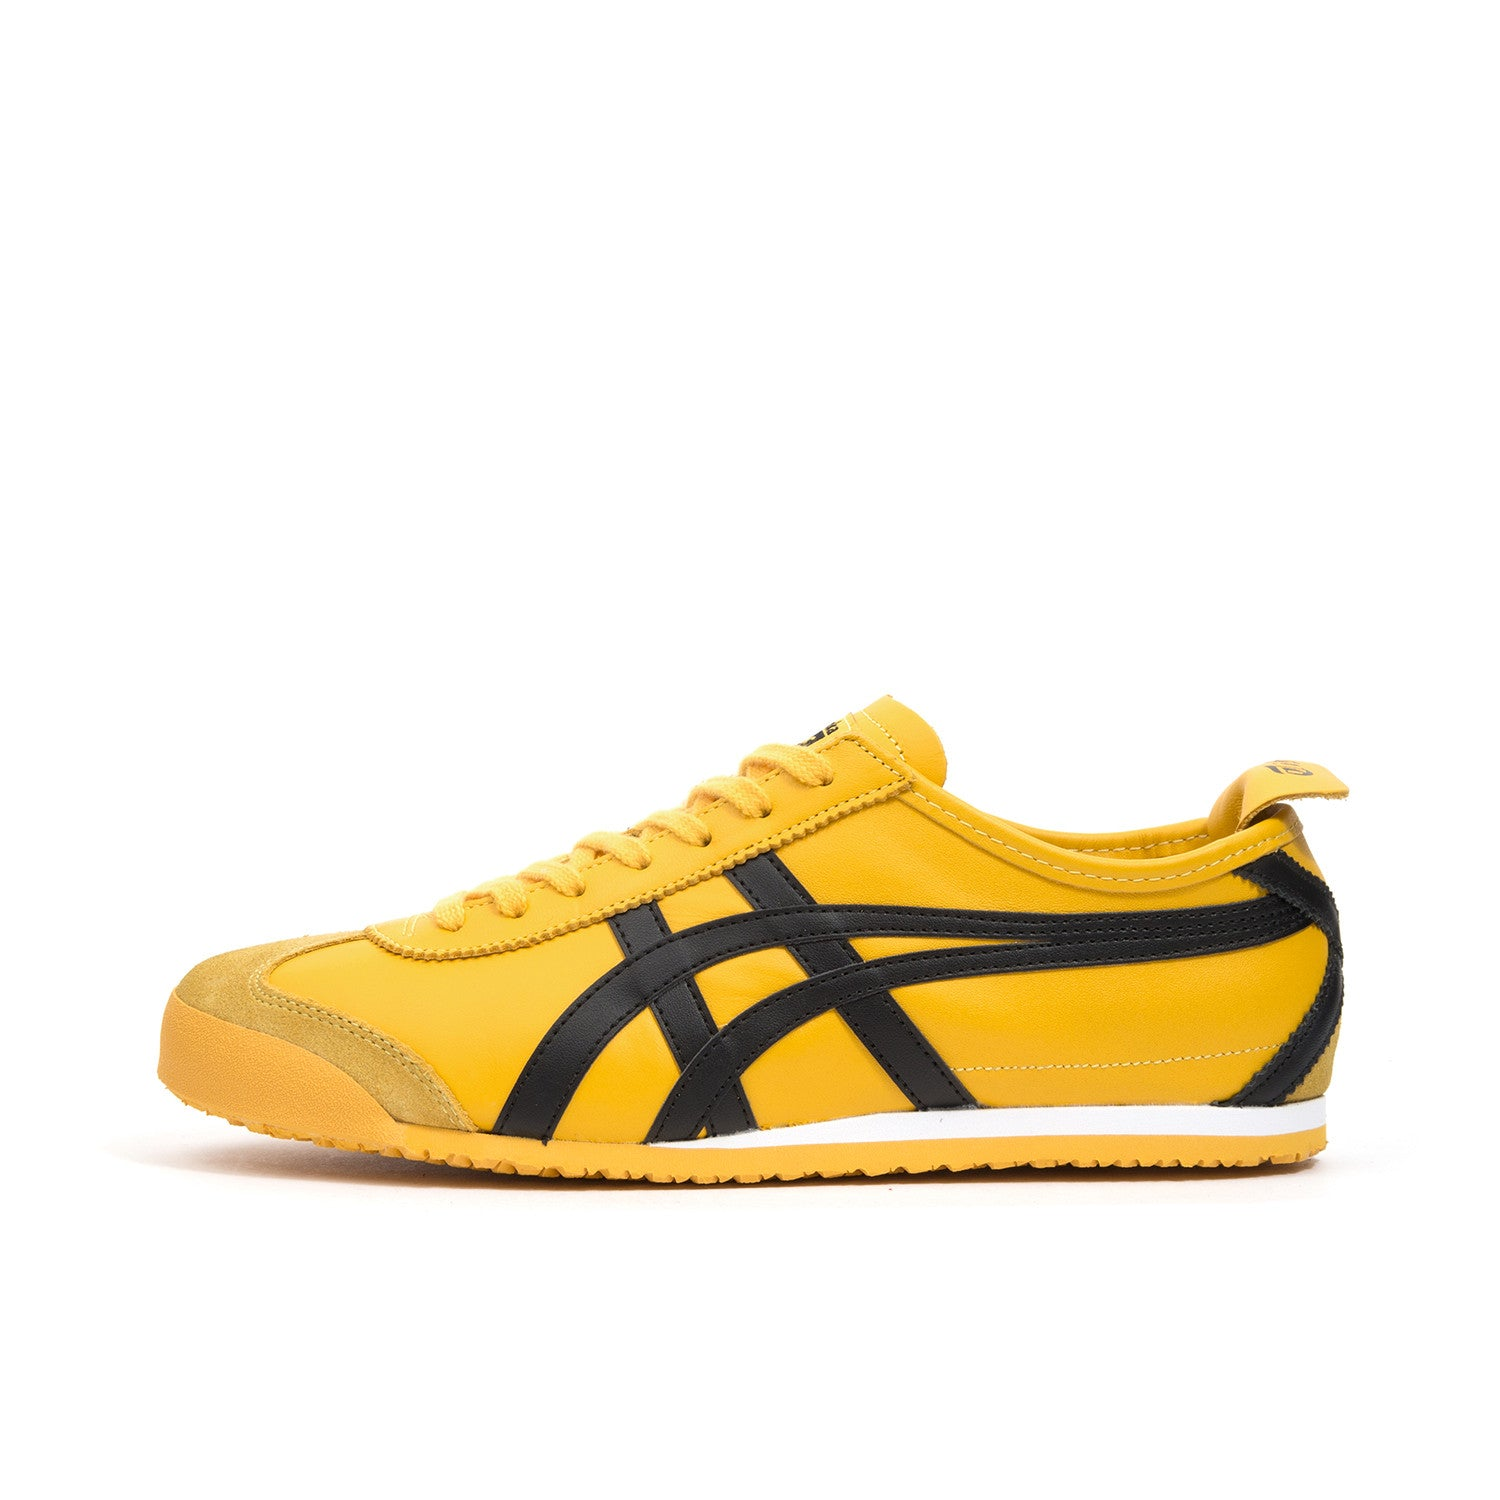 Onitsuka Tiger Mexico 66 Yellow/Black